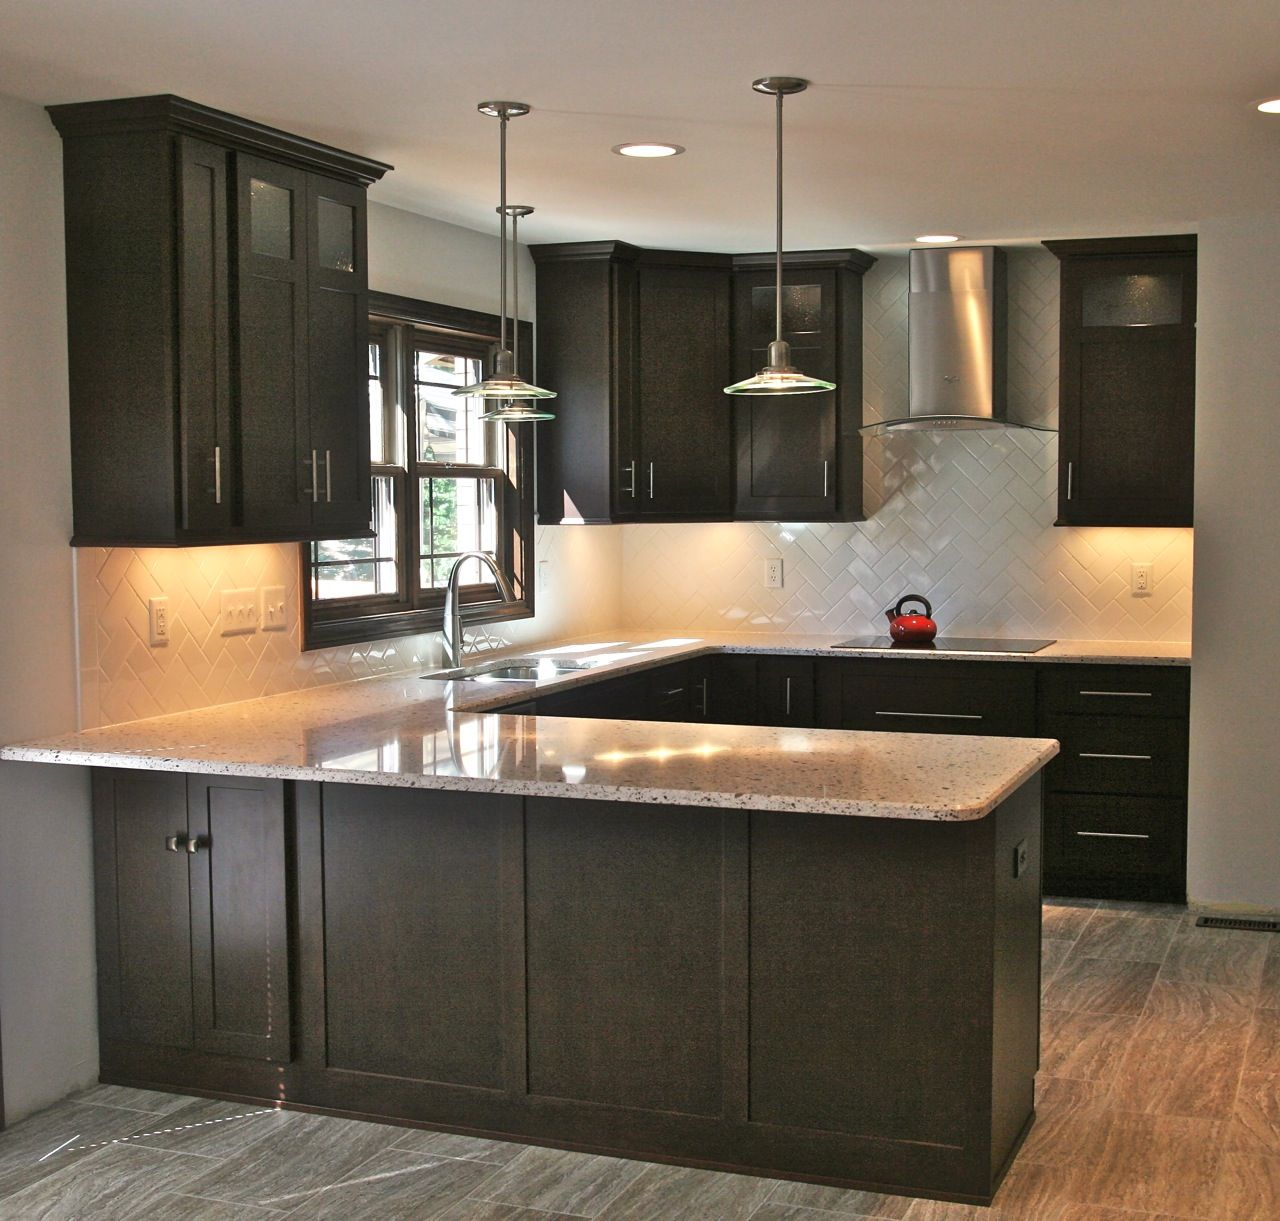 White Cabinets Gray Subway Tile Kashmir White Granite: Dark Kitchen Cabinets, Kitchen Remodel